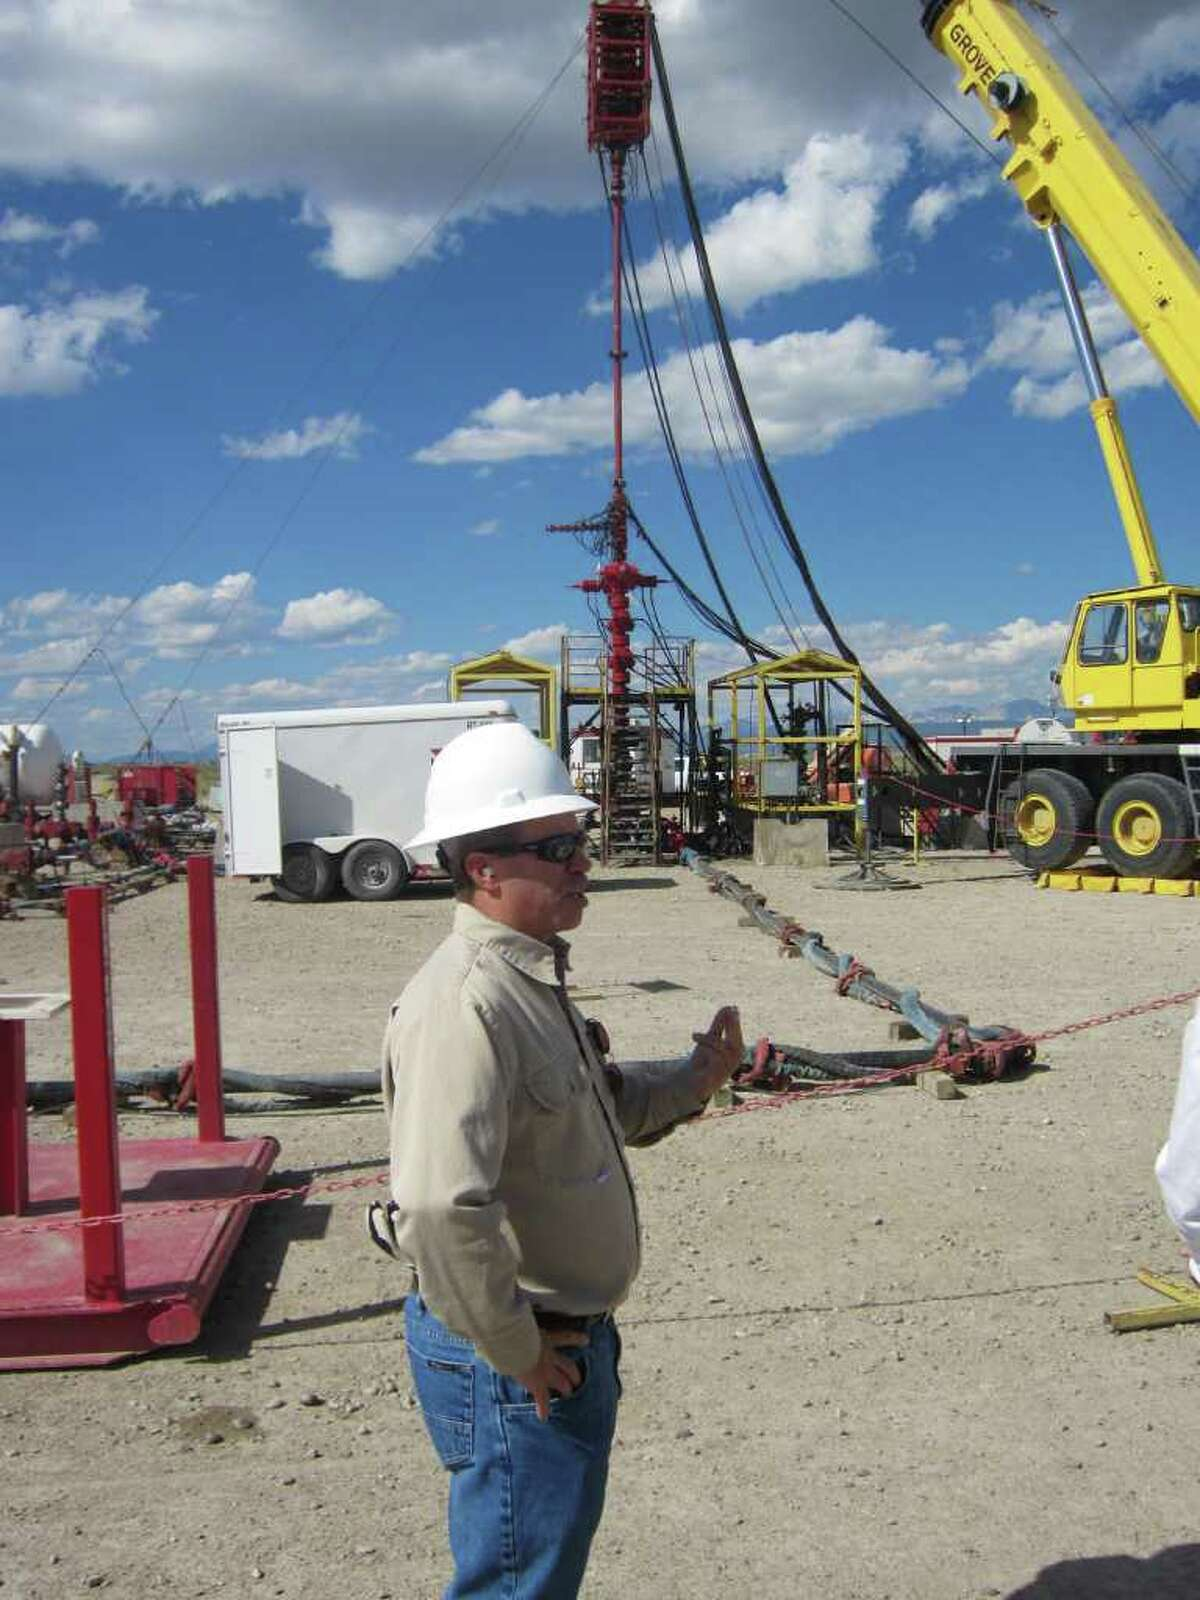 Rob Wheeler, completions superintendent of Shell's Rockies region, oversees a hydraulic fracturing job at a natural gas well outside Pinedale, Wyo.